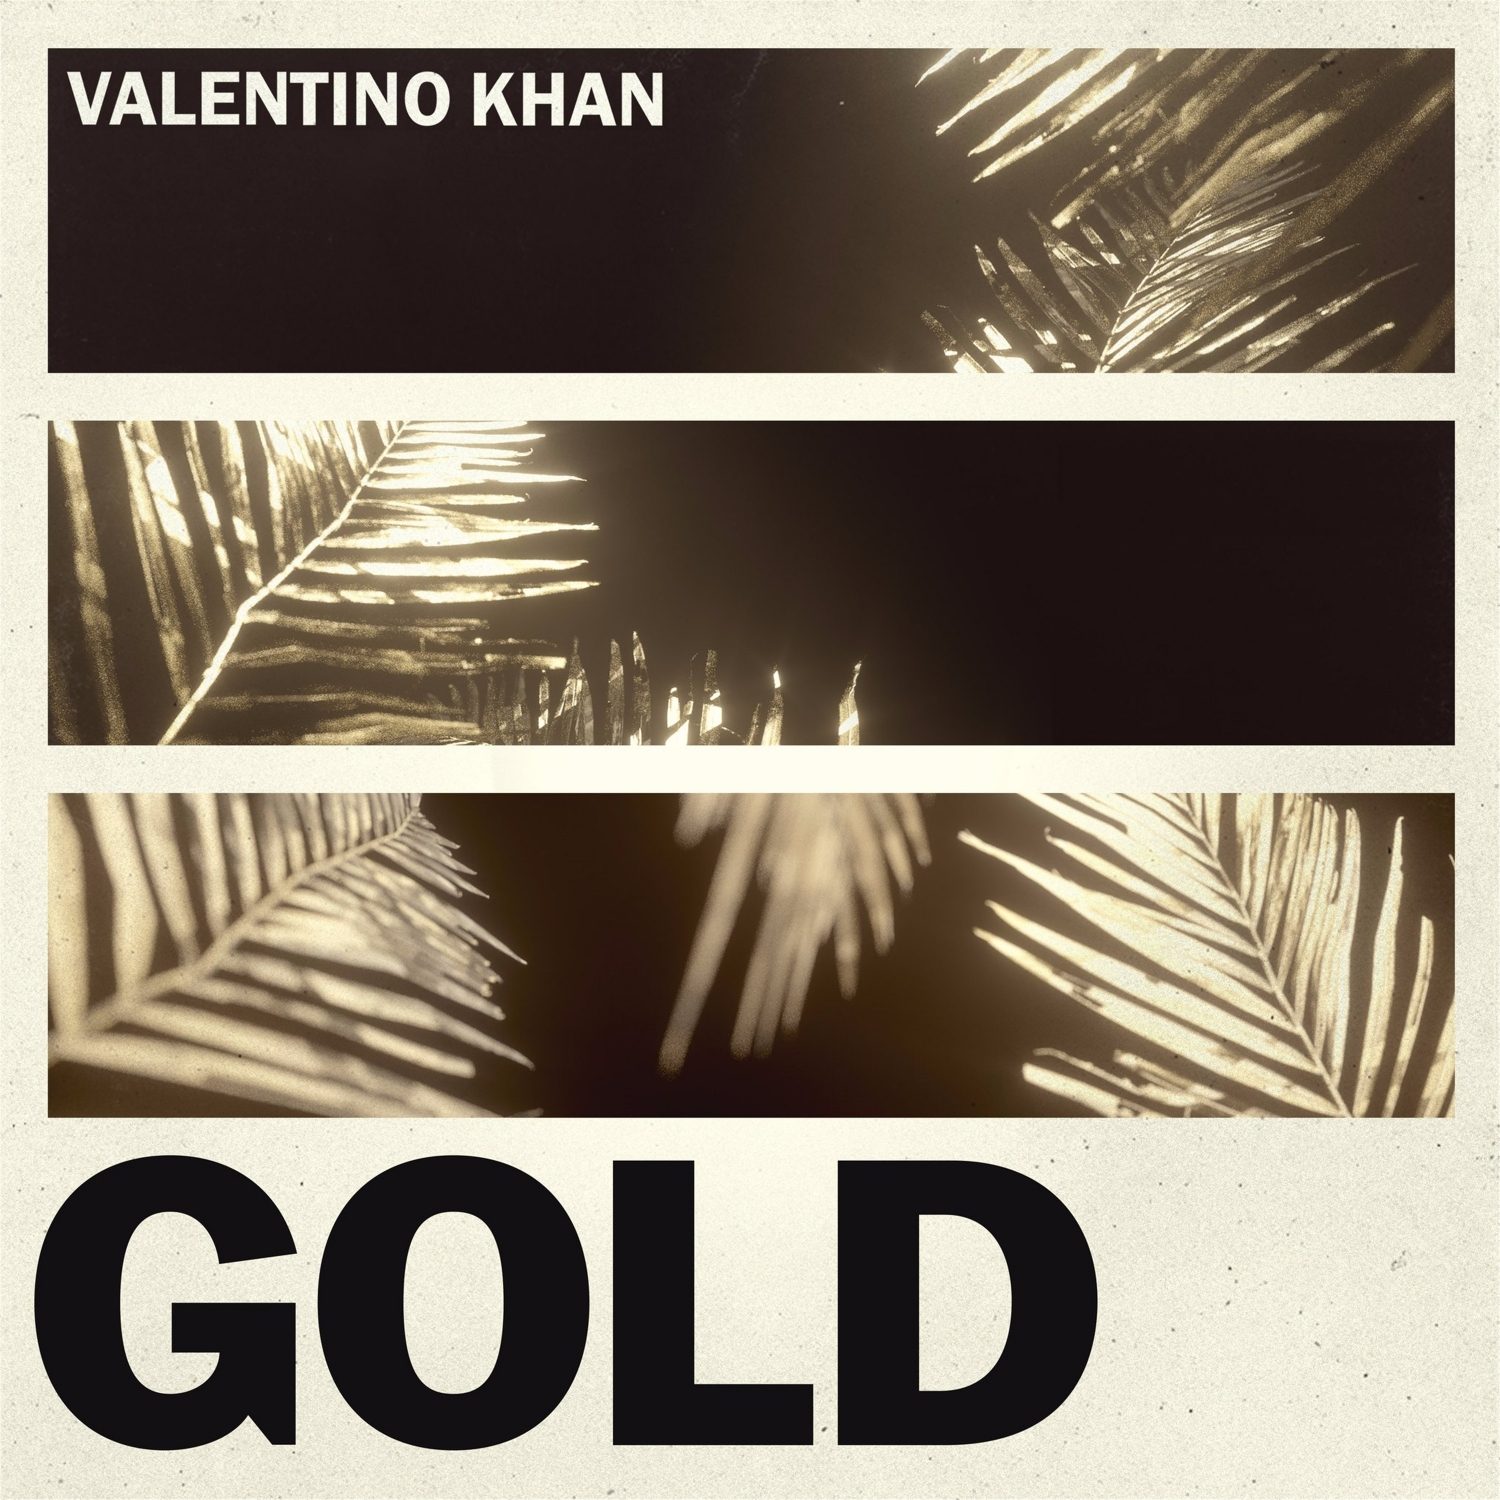 Valentino Khan - Gold (Original Mix)